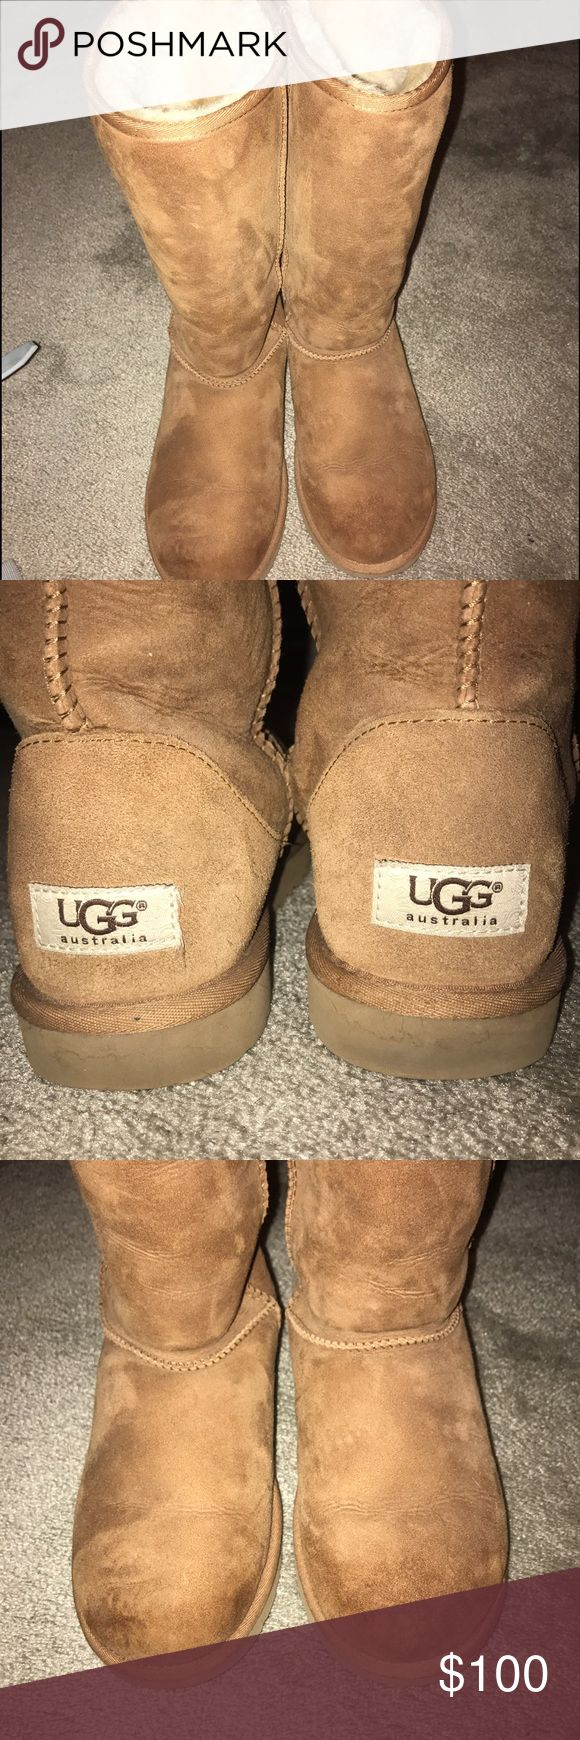 Tall Chesnut Uggs Authentic Women's classic tall UGG boots in color Chesnut, excellent condition on inside and outside, no matting of the wool on the inside UGG Shoes Winter & Rain Boots